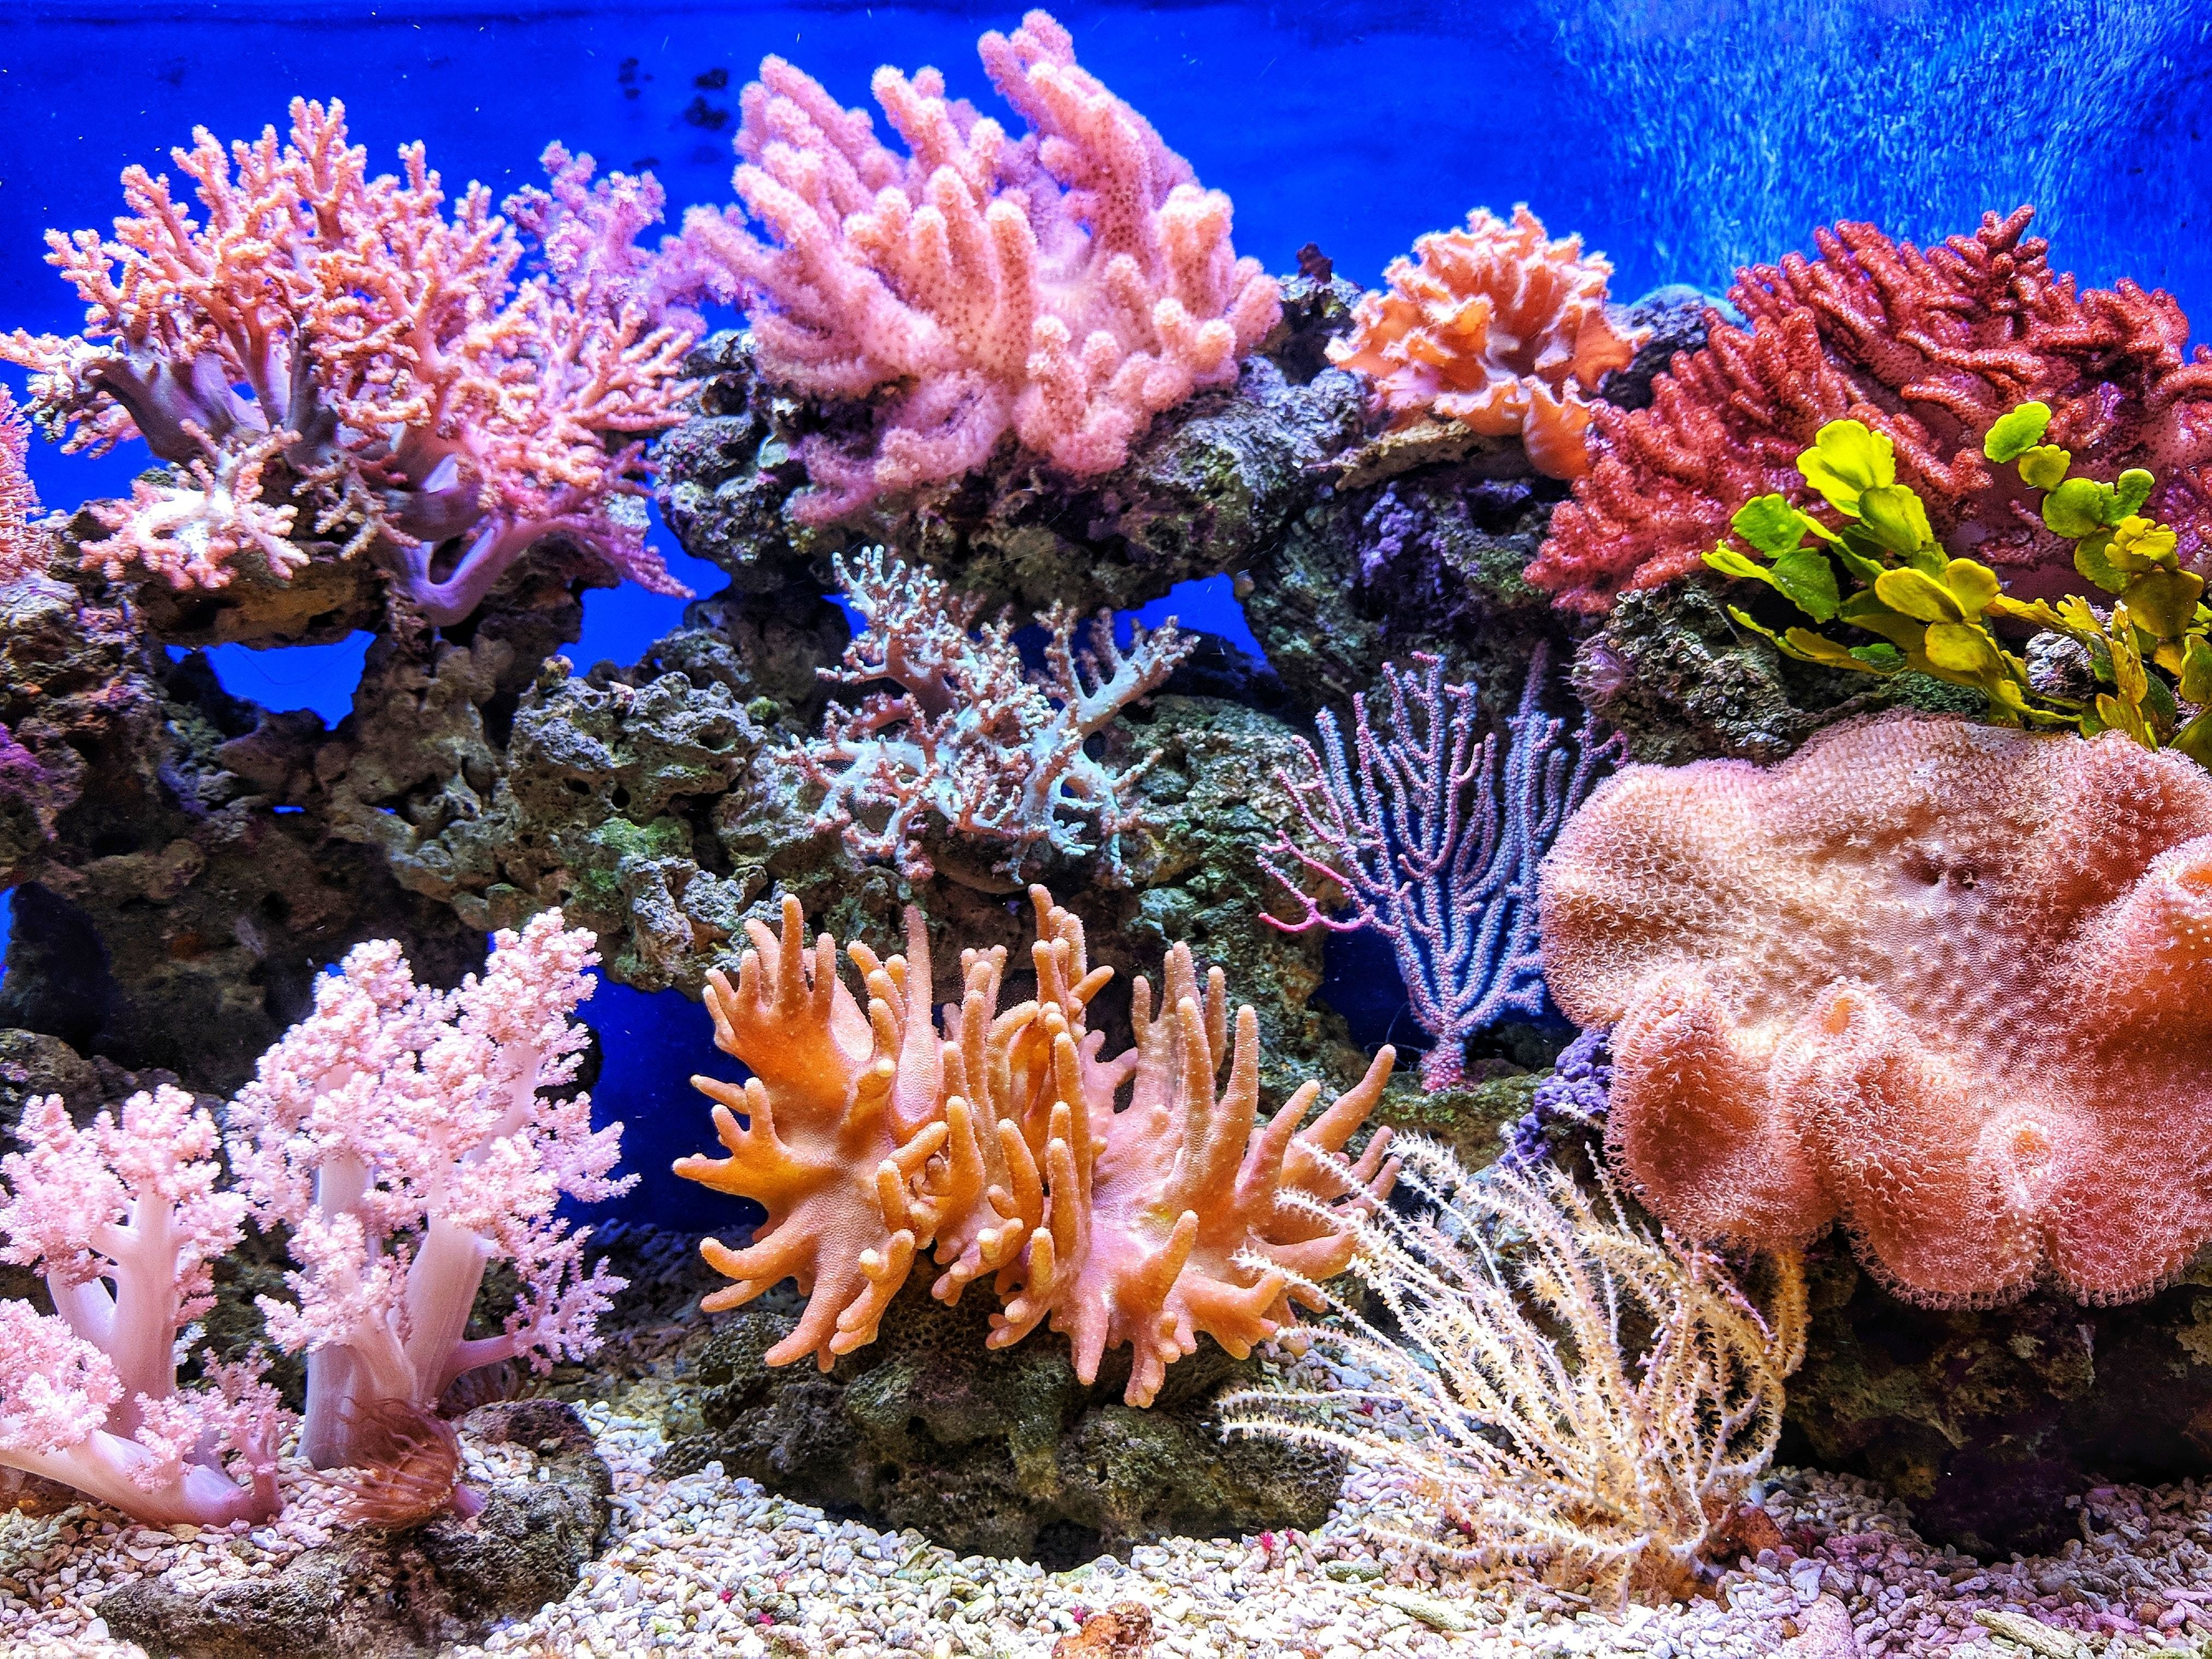 A colourful coral reef in the ocean.